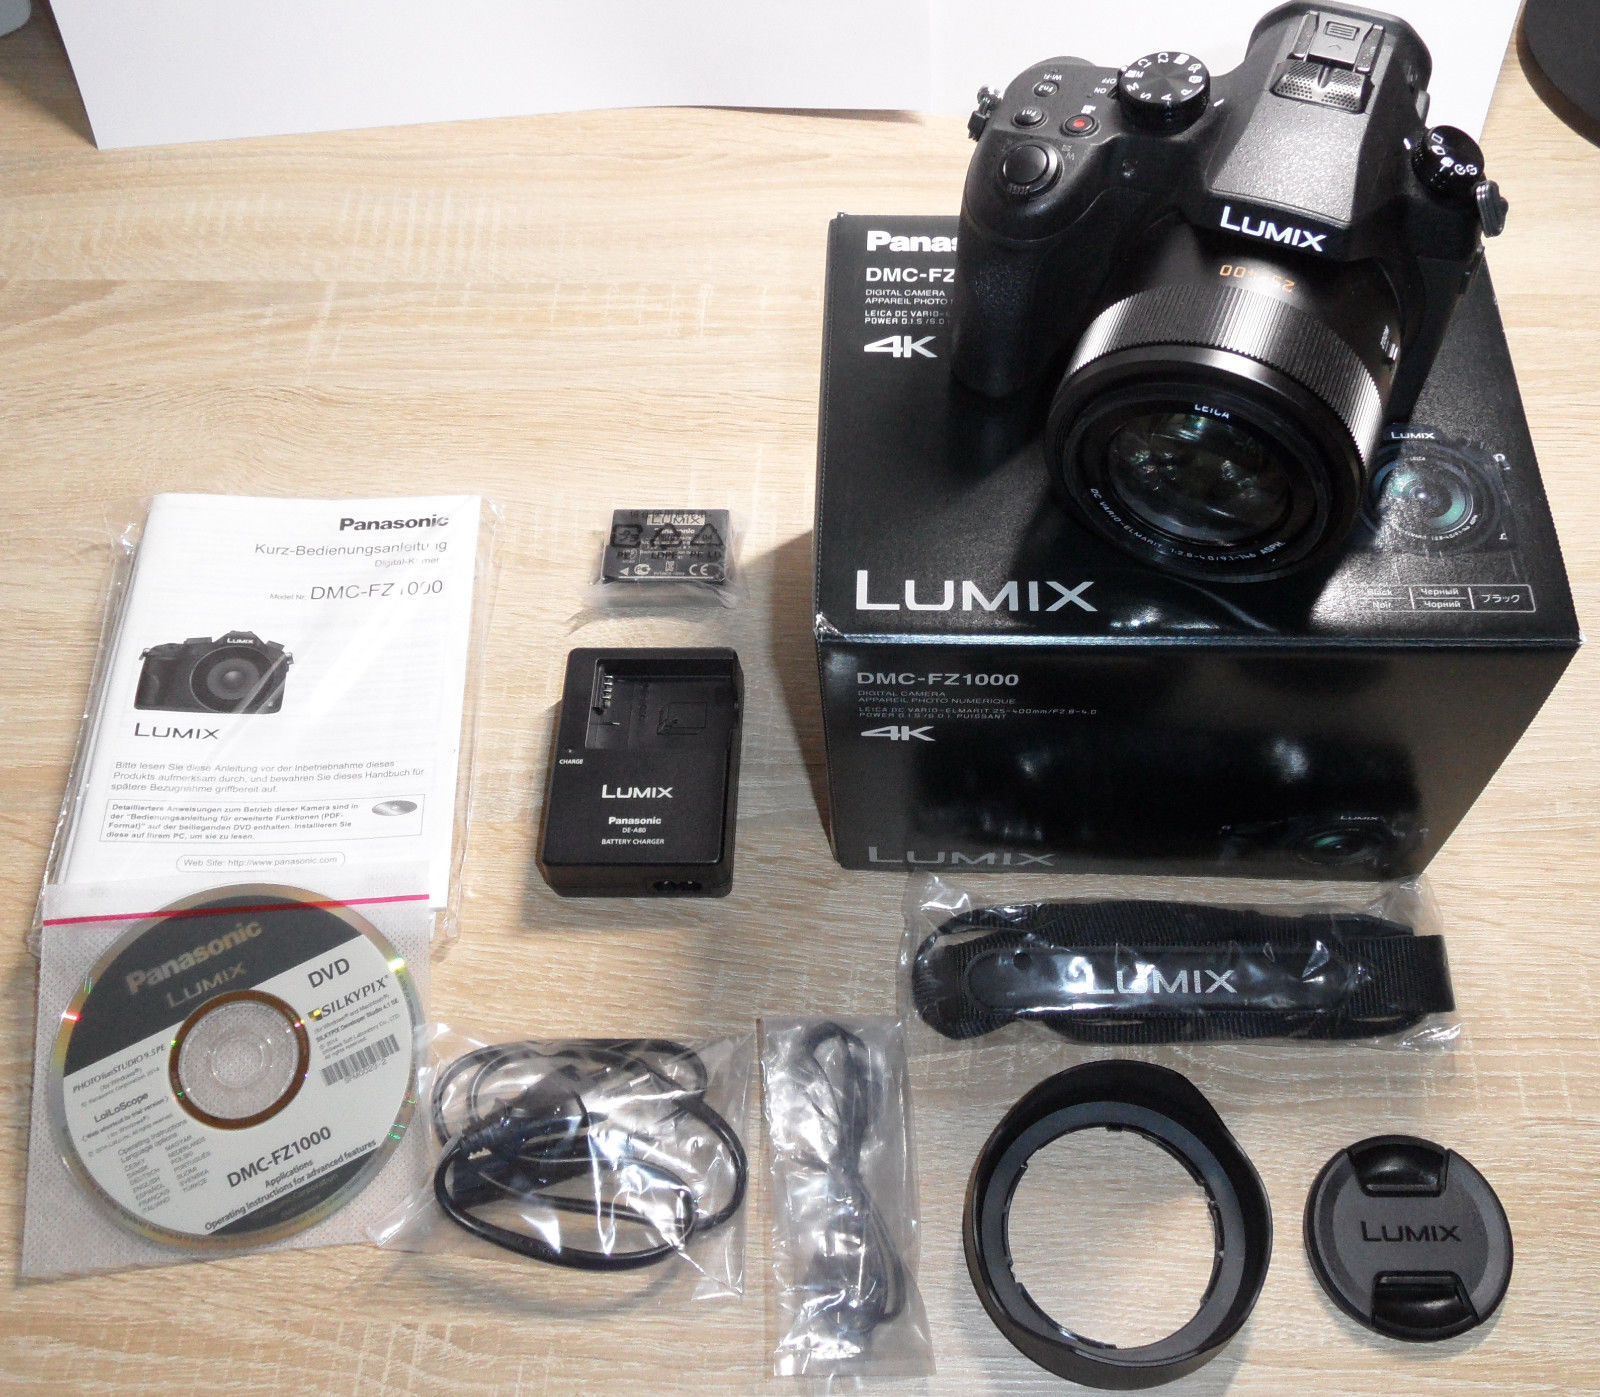 Panasonic LUMIX DMC-FZ1000 20.1 MP Digitalkamera in OVP